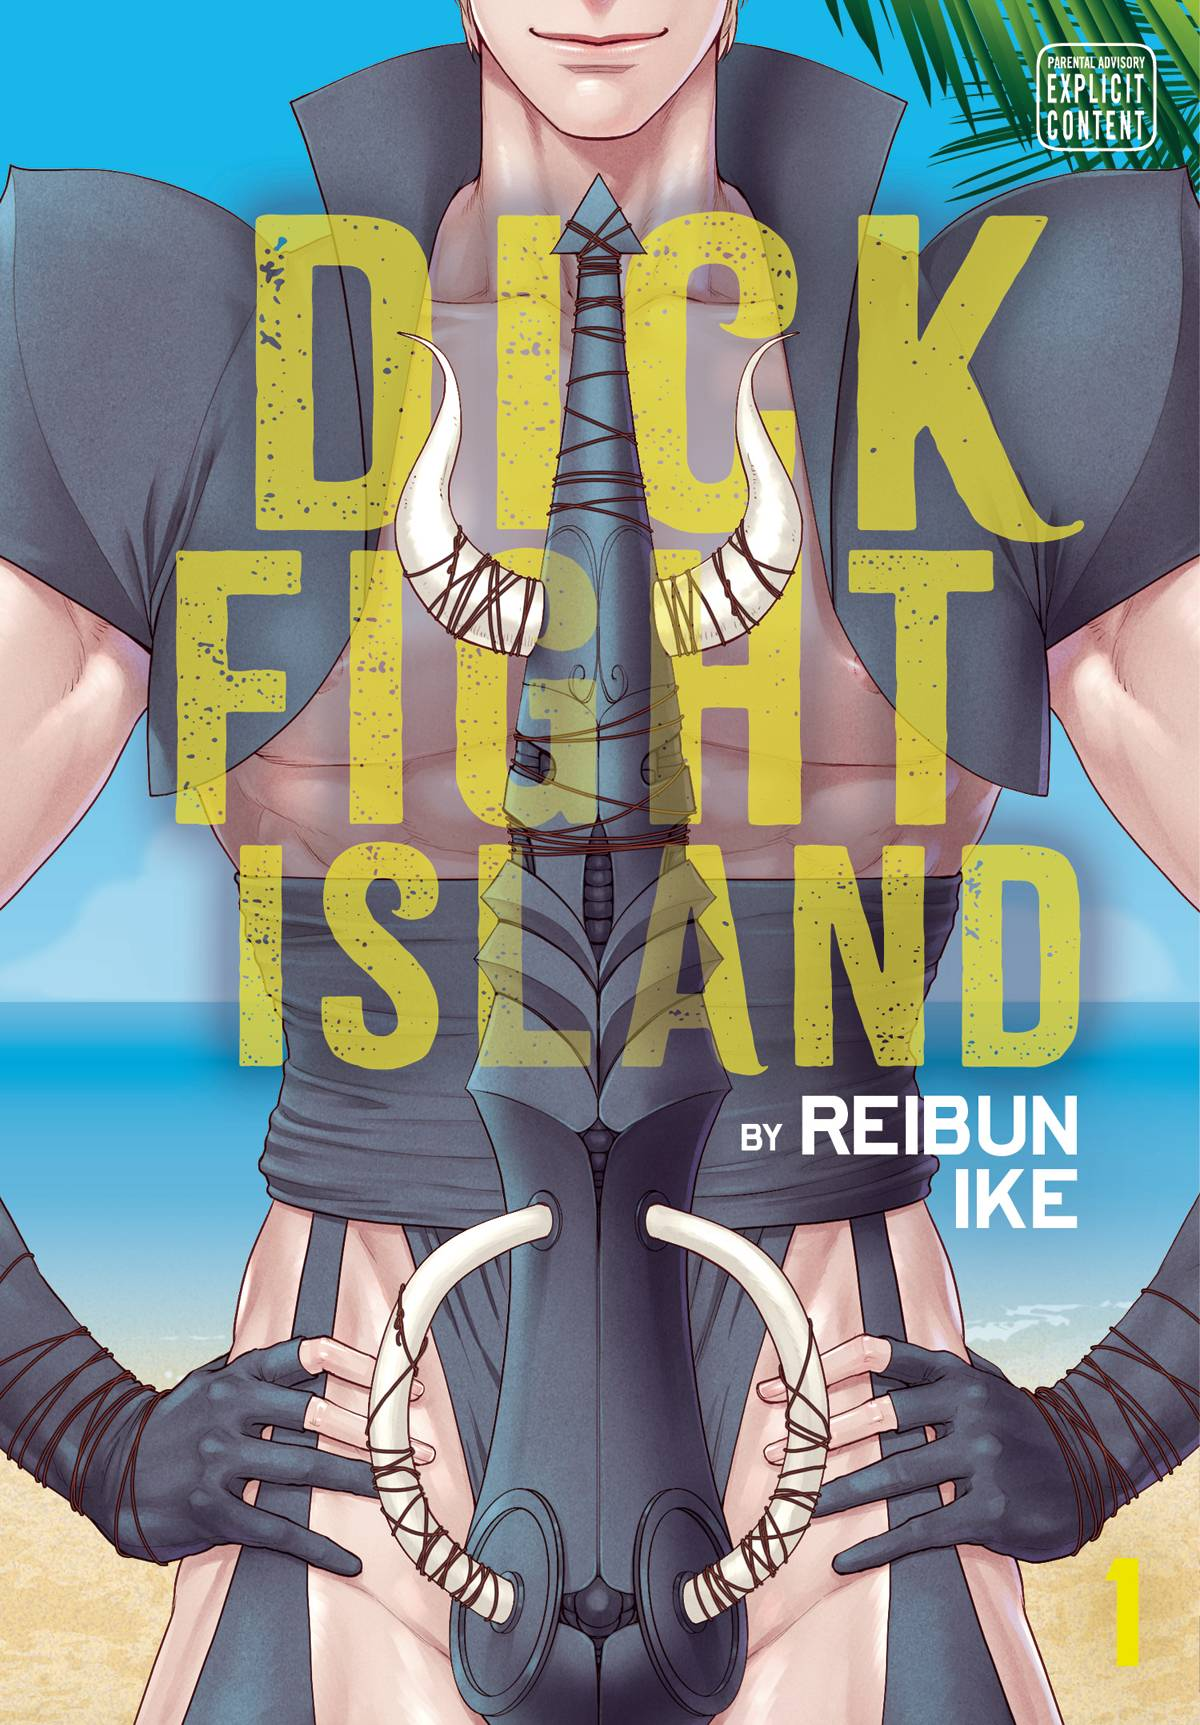 DICK FIGHT ISLAND GN